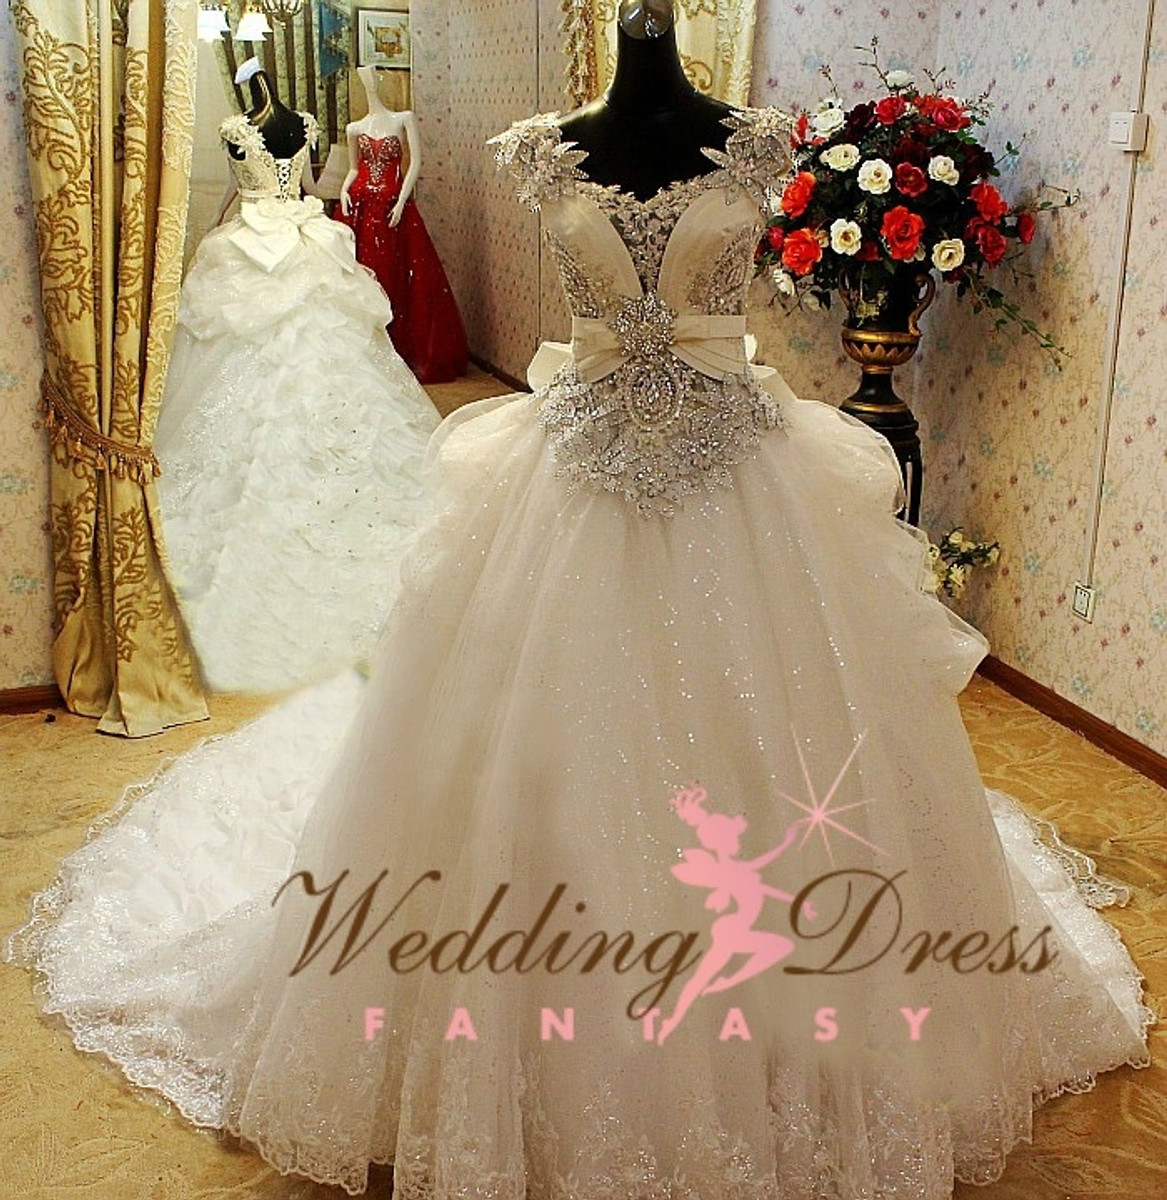 Gypsy Wedding Dress and Irish Traveller Wedding Dress